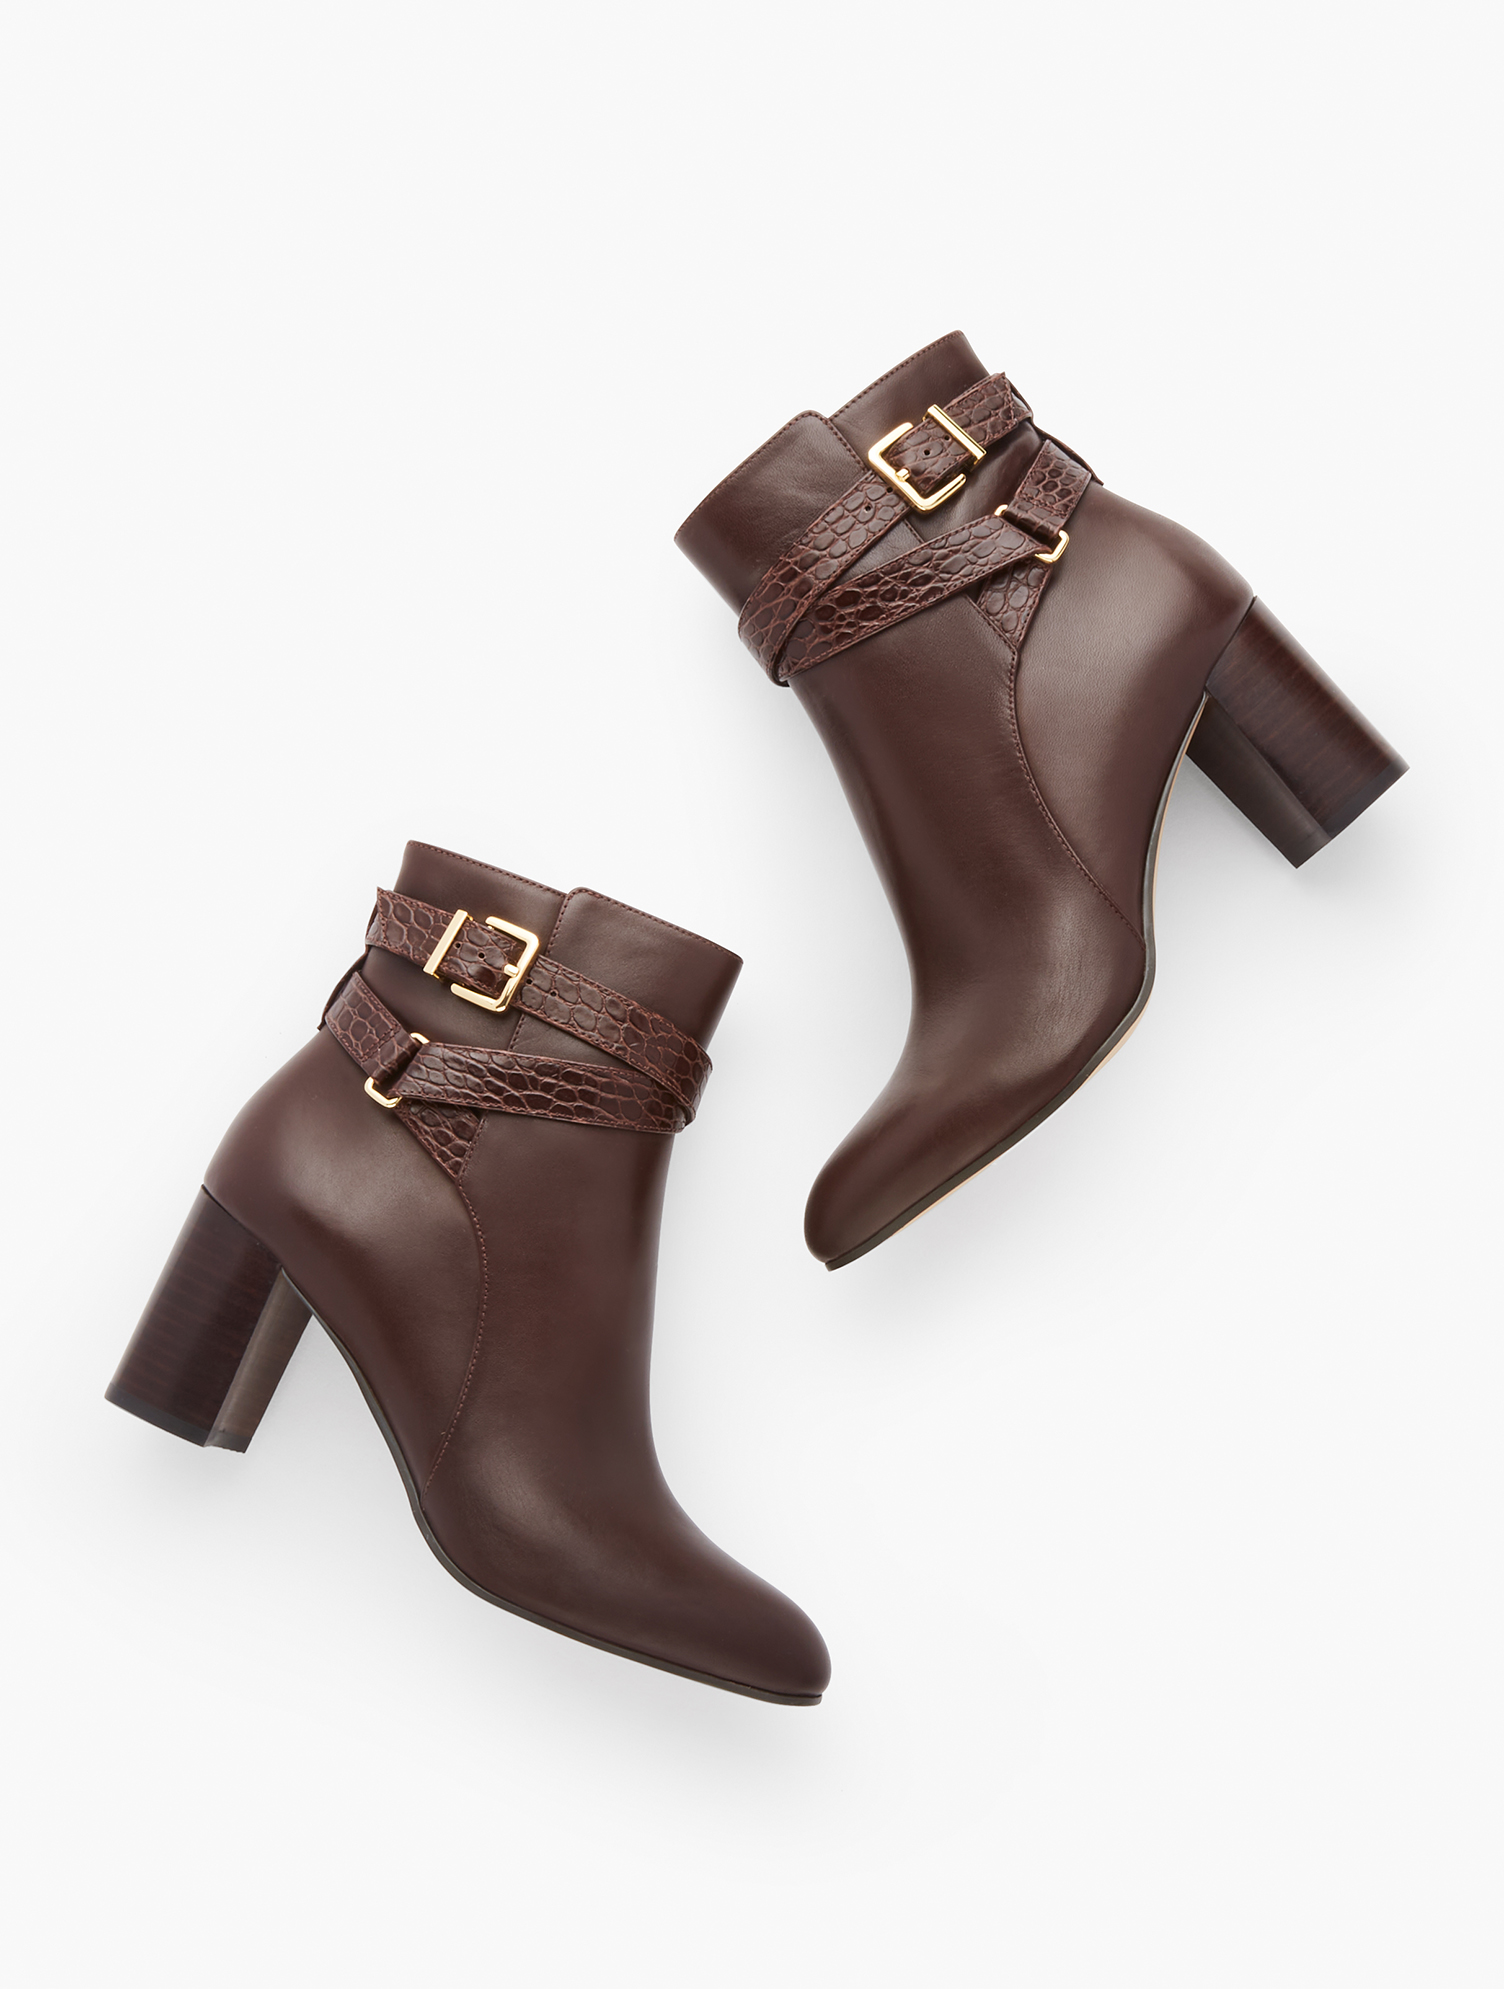 Versatile leather booties with a sleek silhouette, feminine flare heel and almond-shaped toe. Inside-step zip allows for easy on and off. Features 3 inches heelAlmond toe3MM Memory foam footbedImported Material: 100% Leather Simone Vachetta Ankle Boots - Dark Brown - 11M Talbots